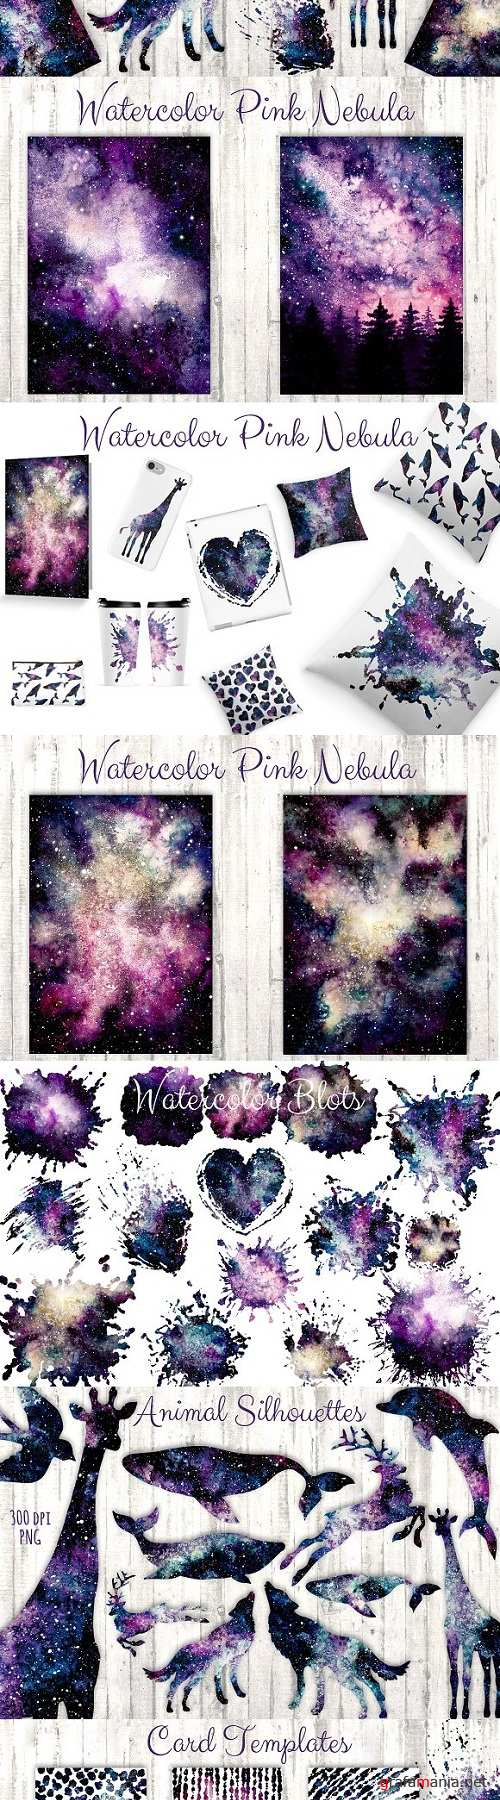 Watercolor Pink Nebula Collection - 1046817